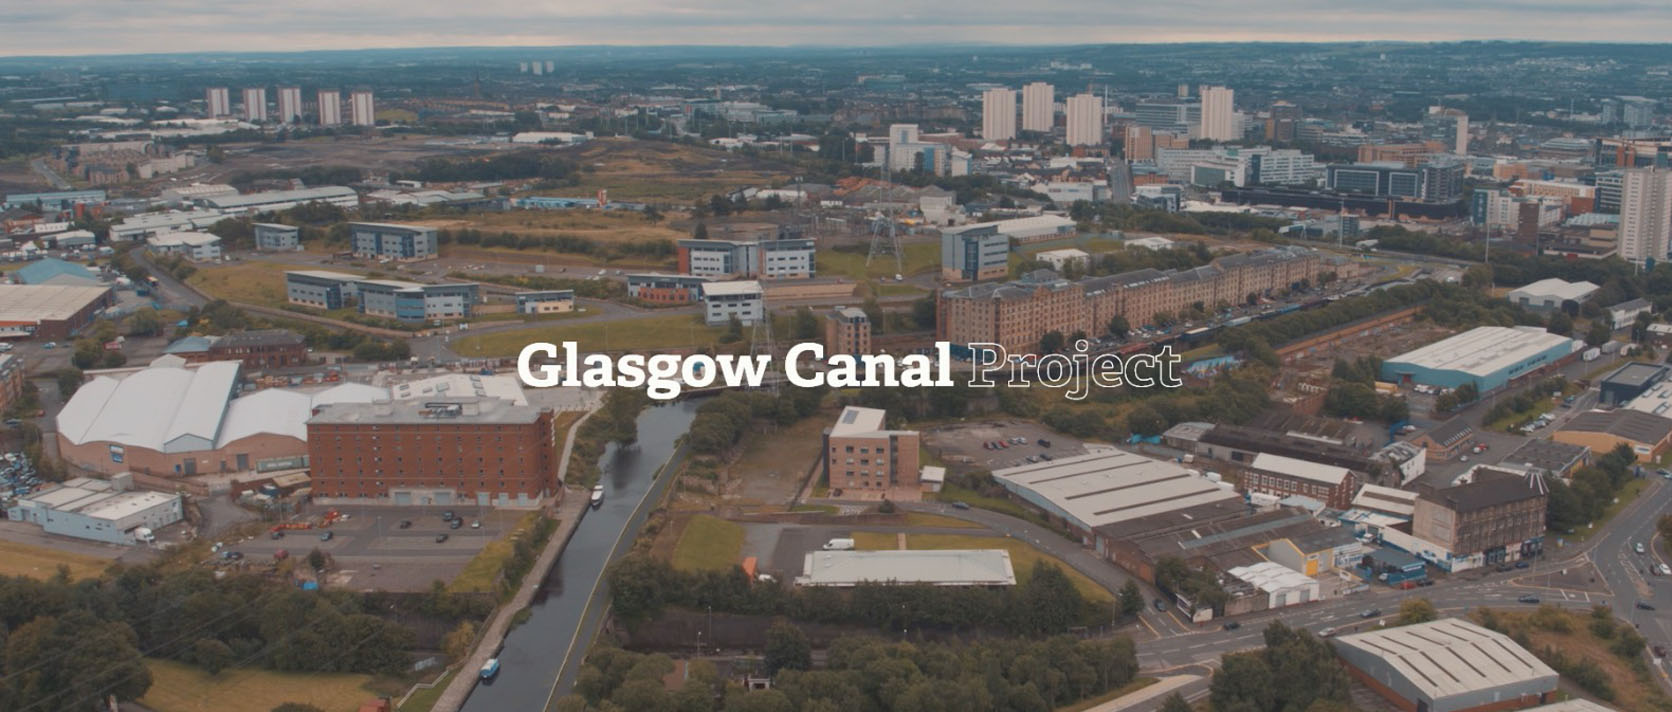 Glasgow Canal Project - Area Video